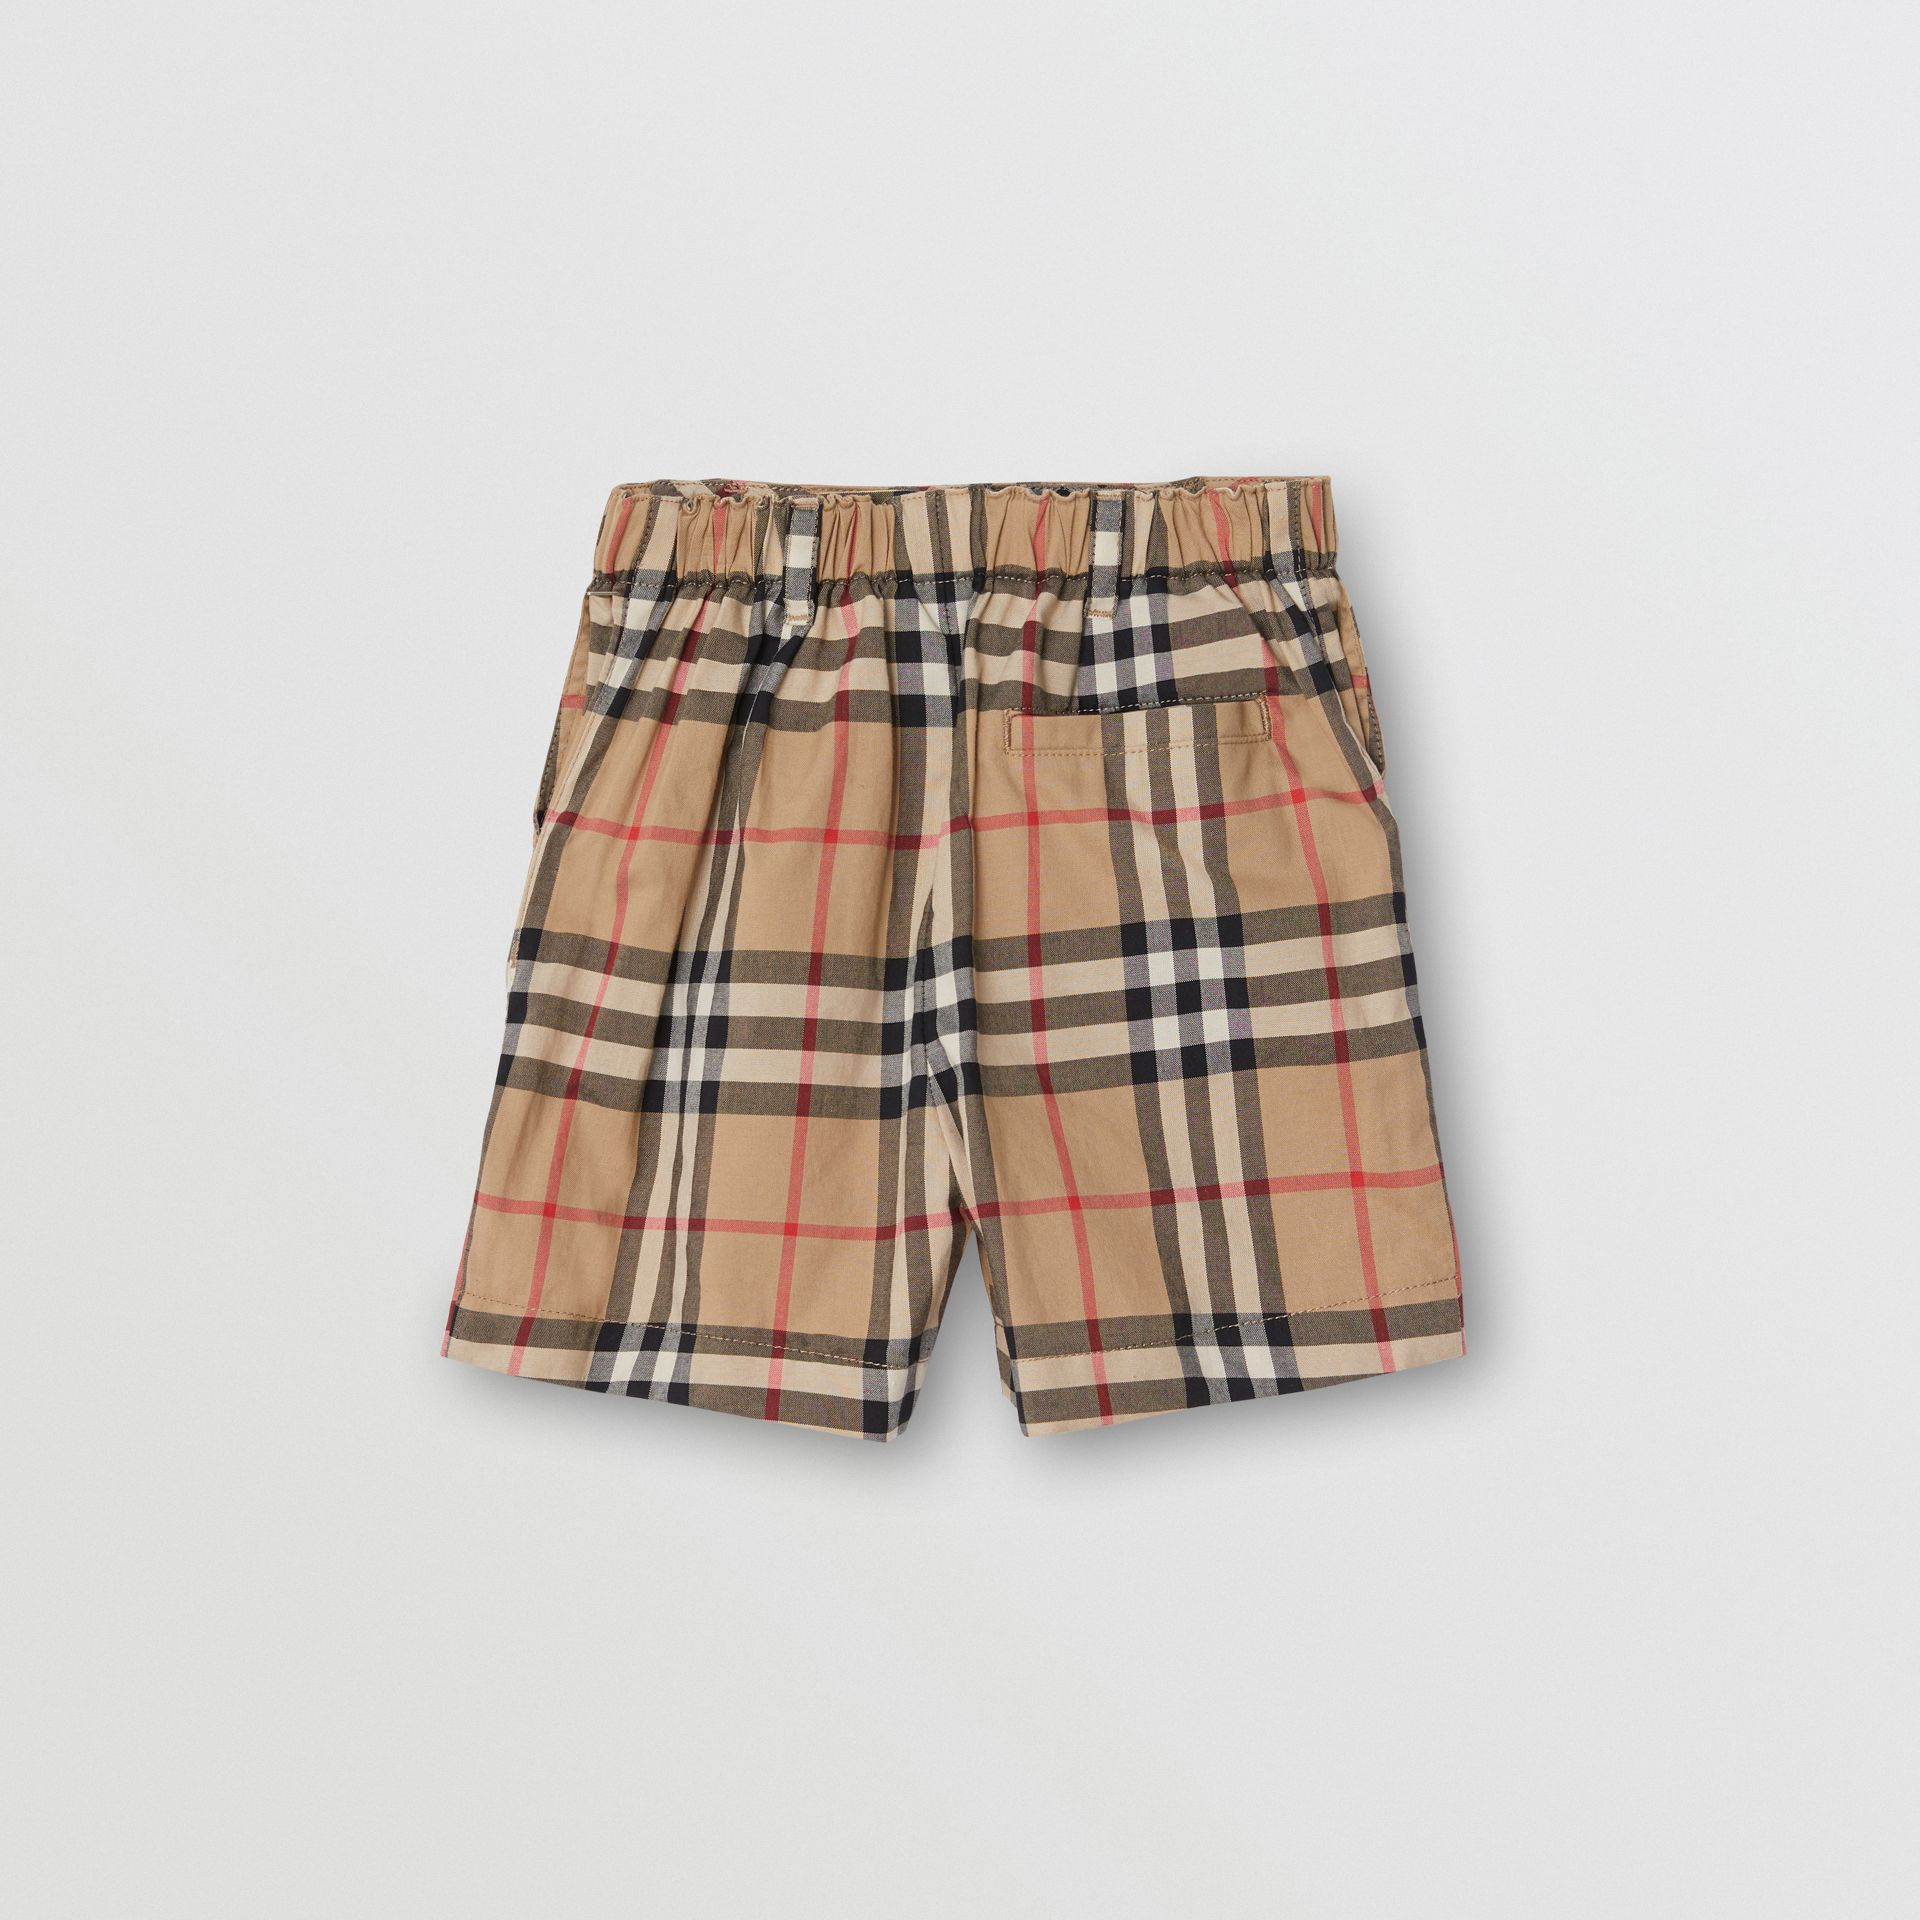 Short en popeline de coton Vintage check (Beige D'archive) - Enfant | Burberry - photo de la galerie 2